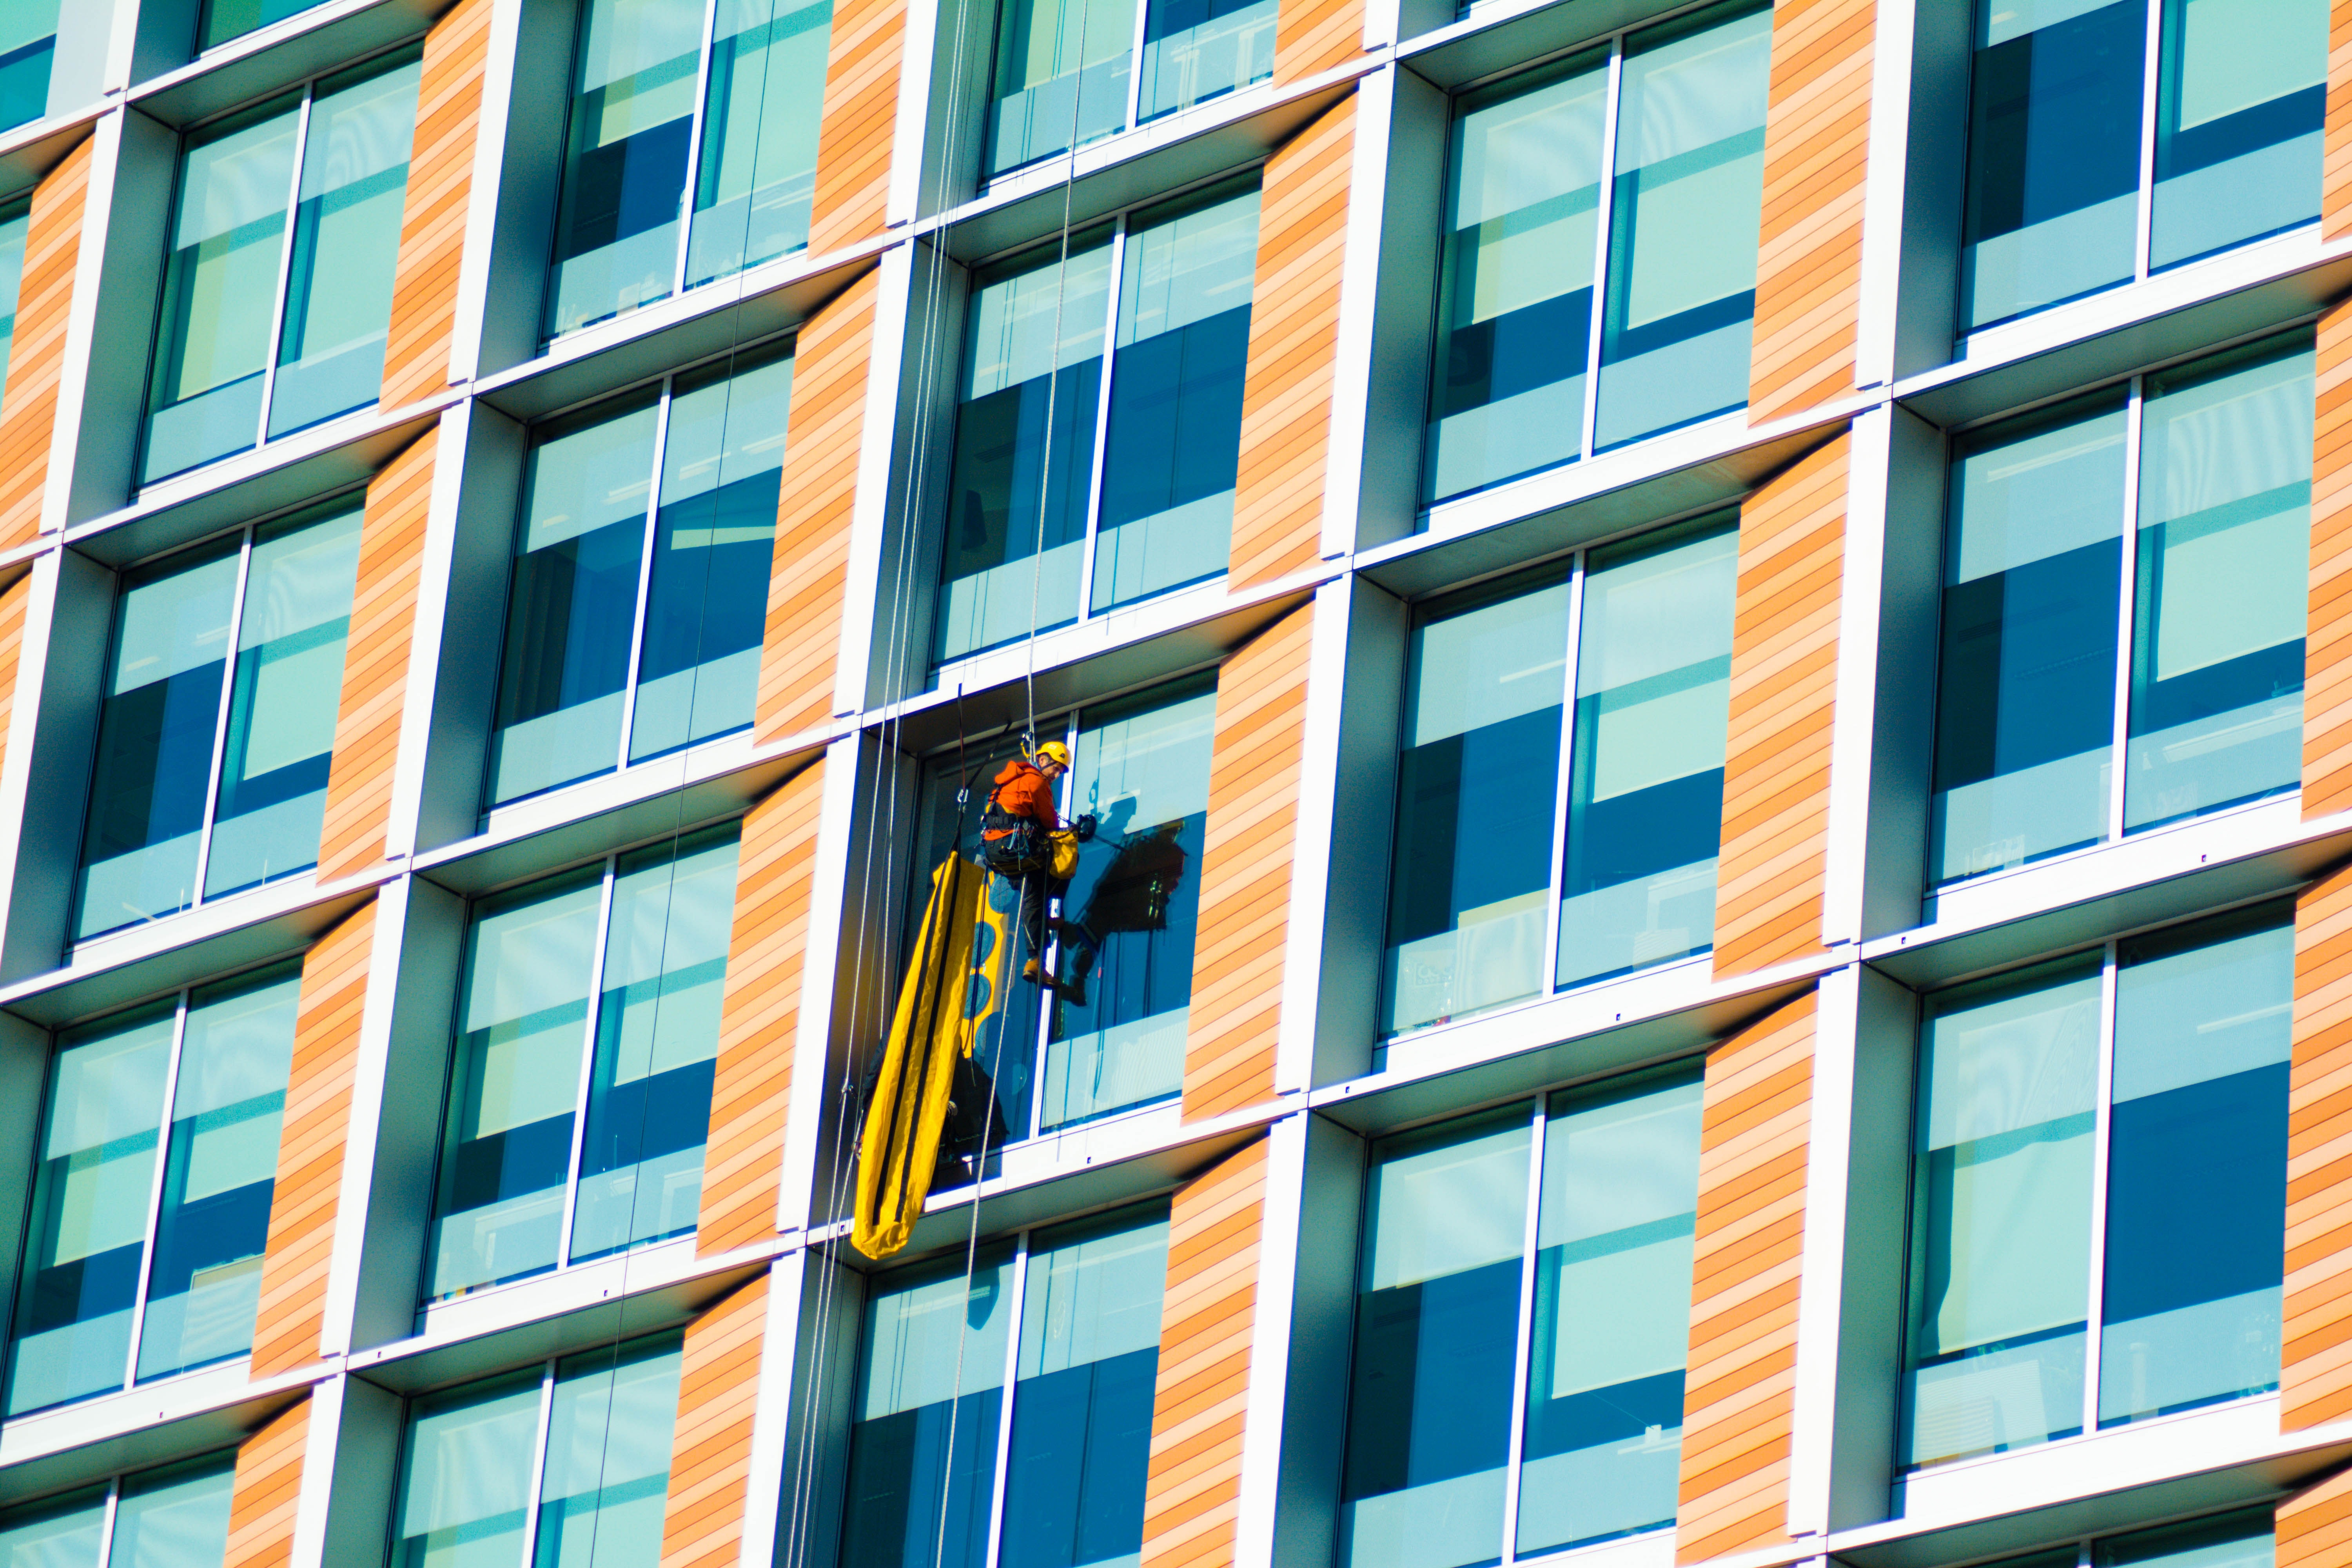 A window cleaner on a rope near an office building window